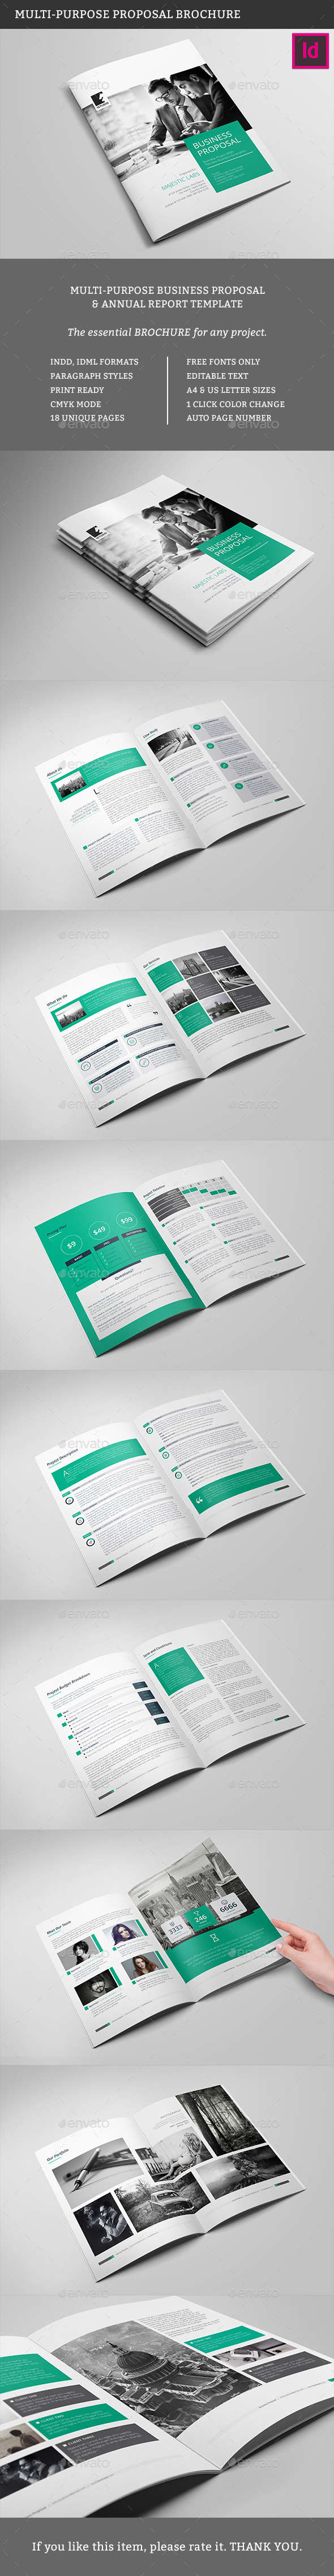 proposal report template%0A Multipurpose Business Proposal